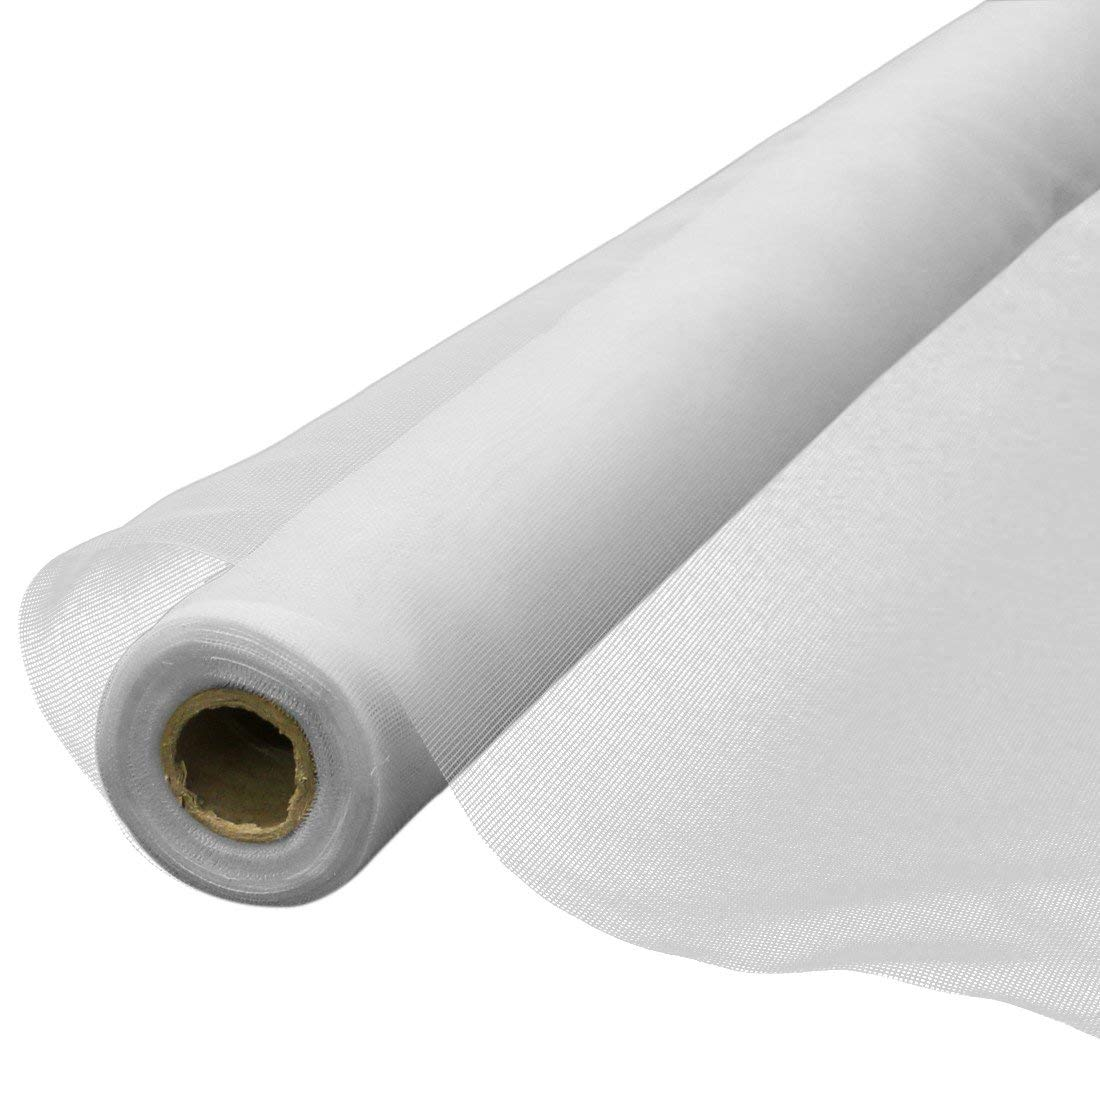 Ecover 6.5'x30' Insect Bird Mosquito Bug Soft Barrier Garden Netting Protecting Vetetables Flowers Plants Fruits, 2 Pack